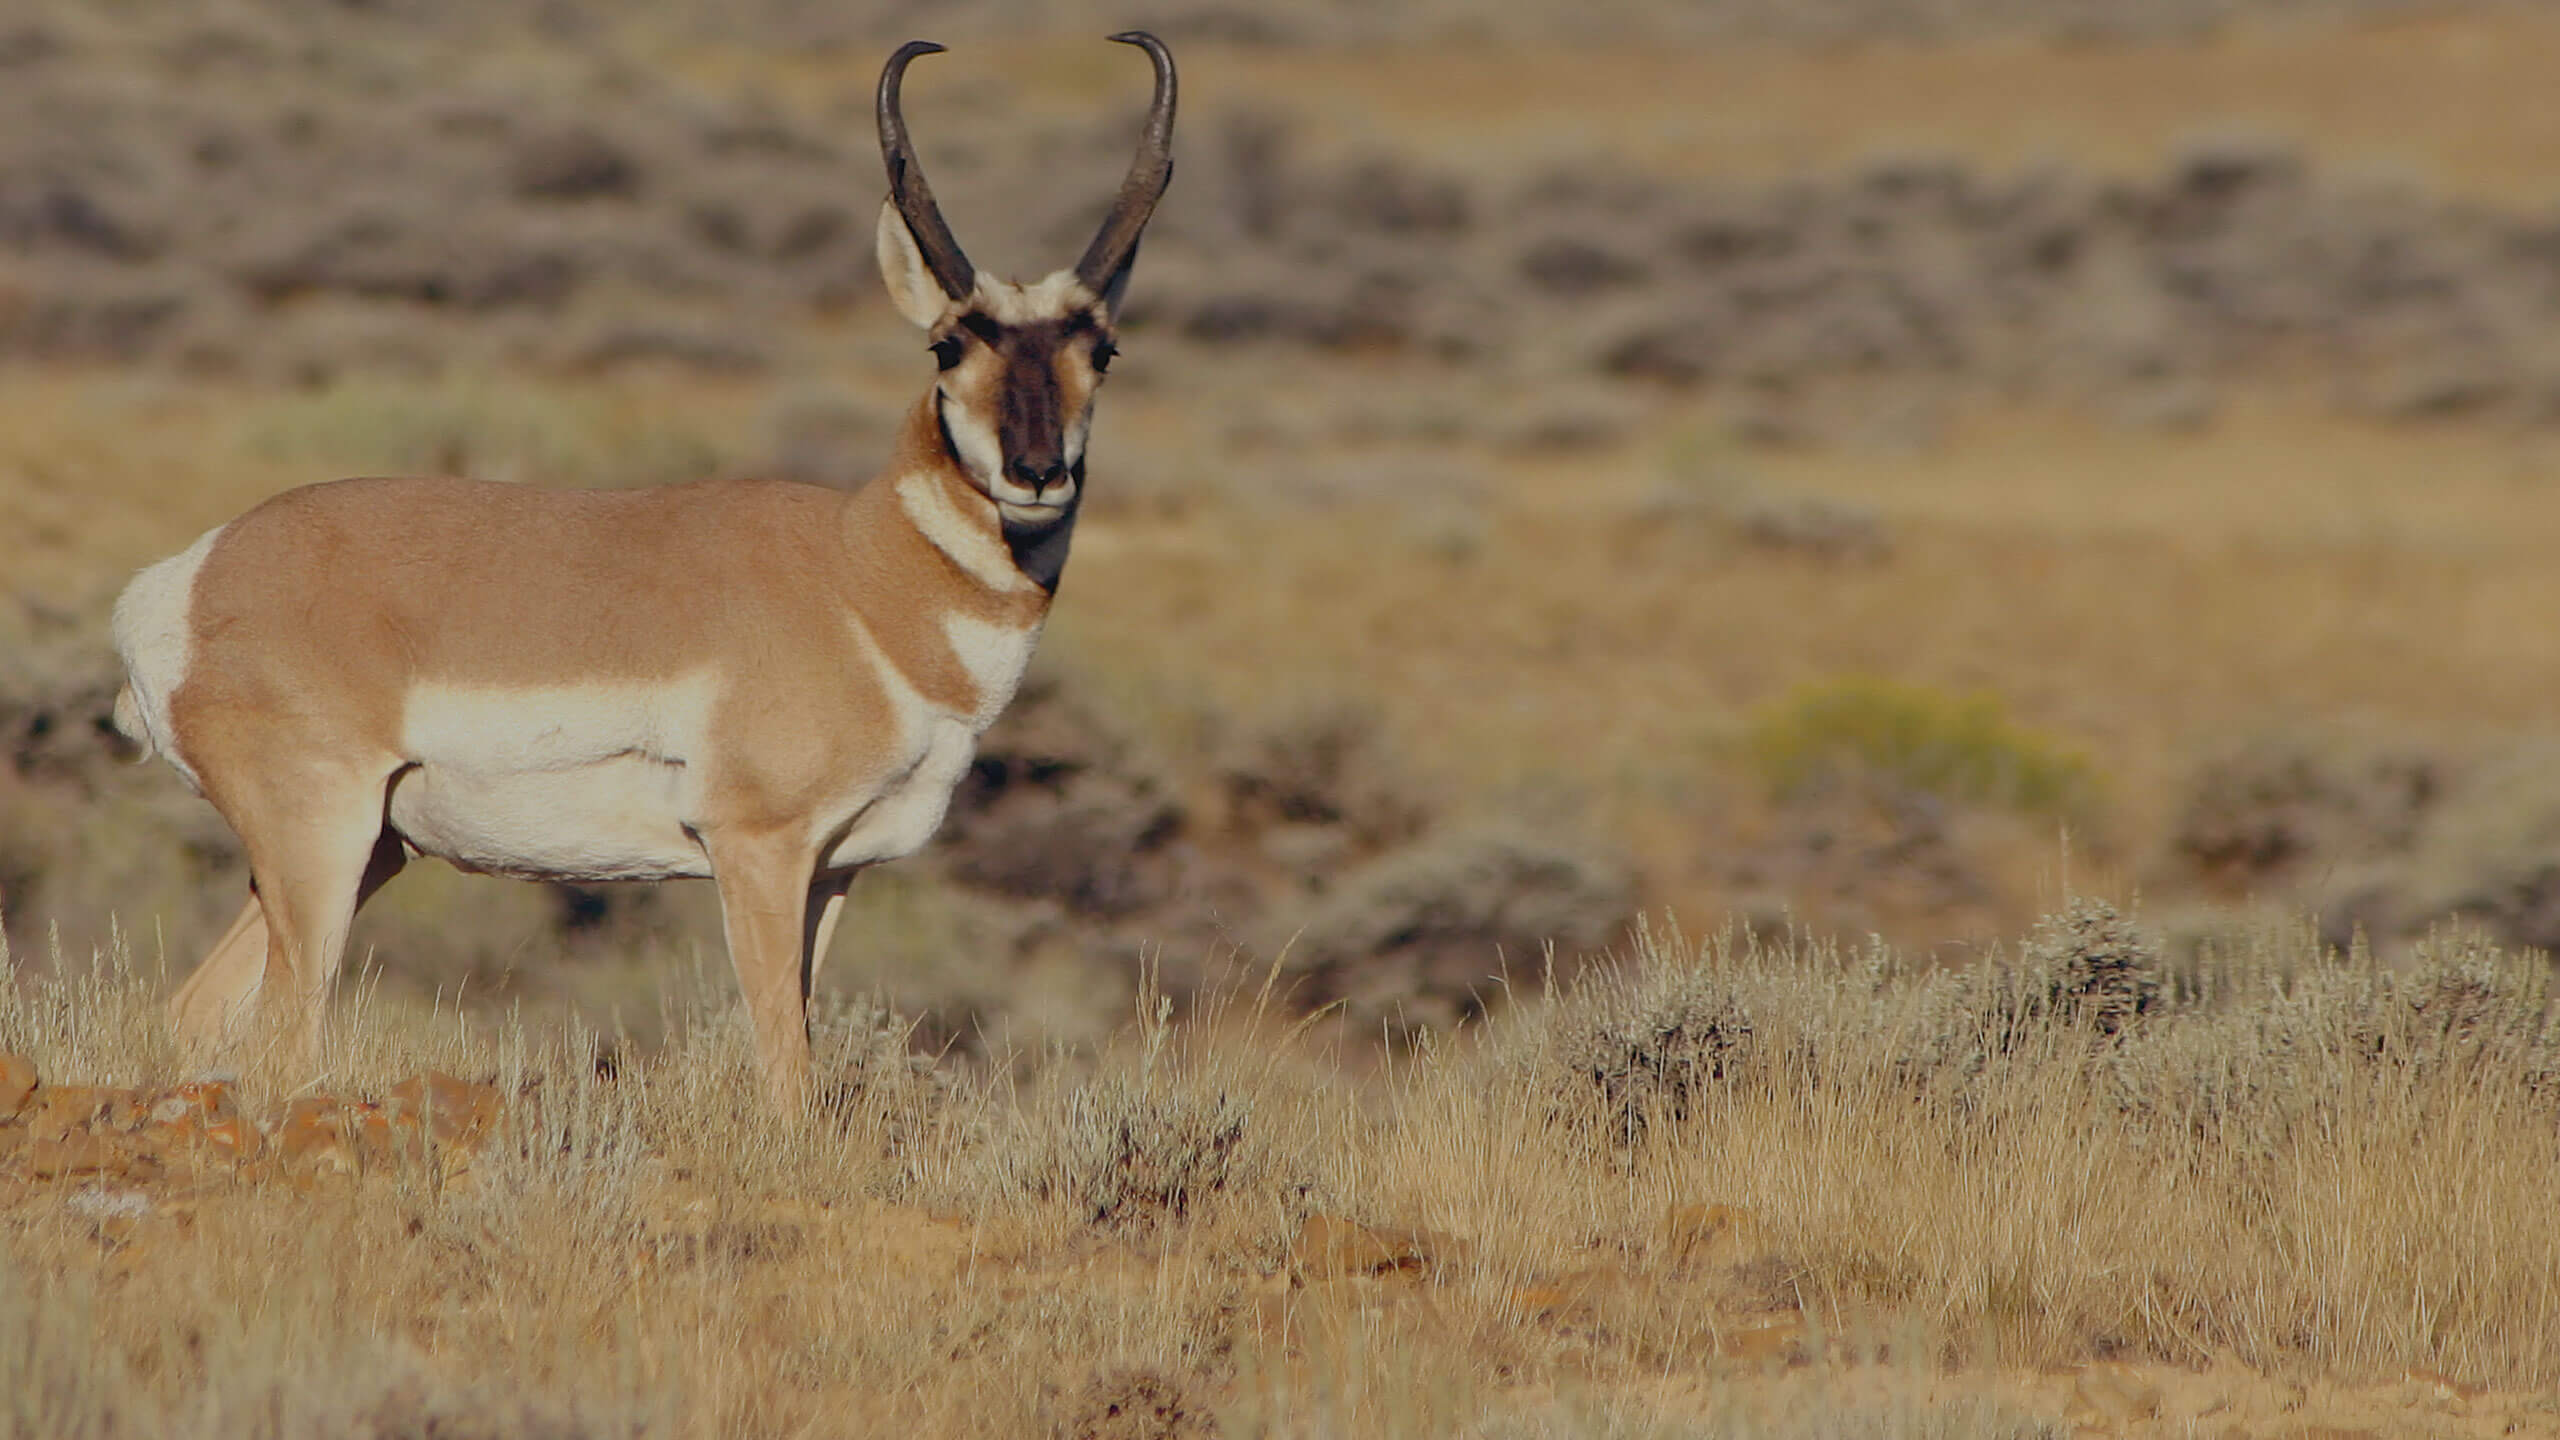 antelope New Mexico - guided trophy hunts with G3 Outfitters